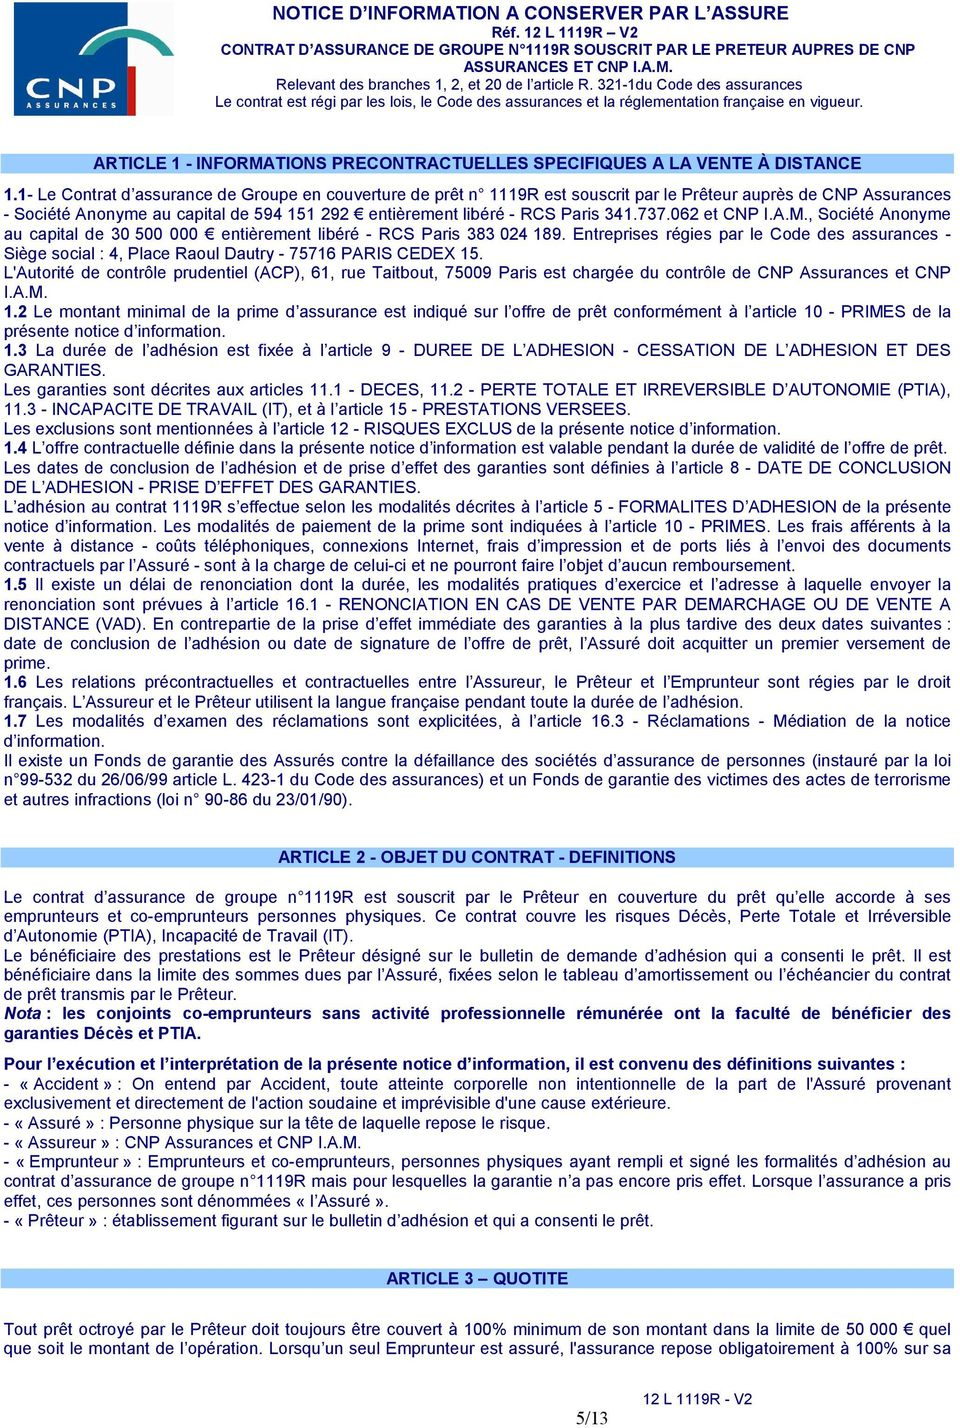 ARTICLE 1 - INFORMATIONS PRECONTRACTUELLES SPECIFIQUES A LA VENTE À DISTANCE 1.